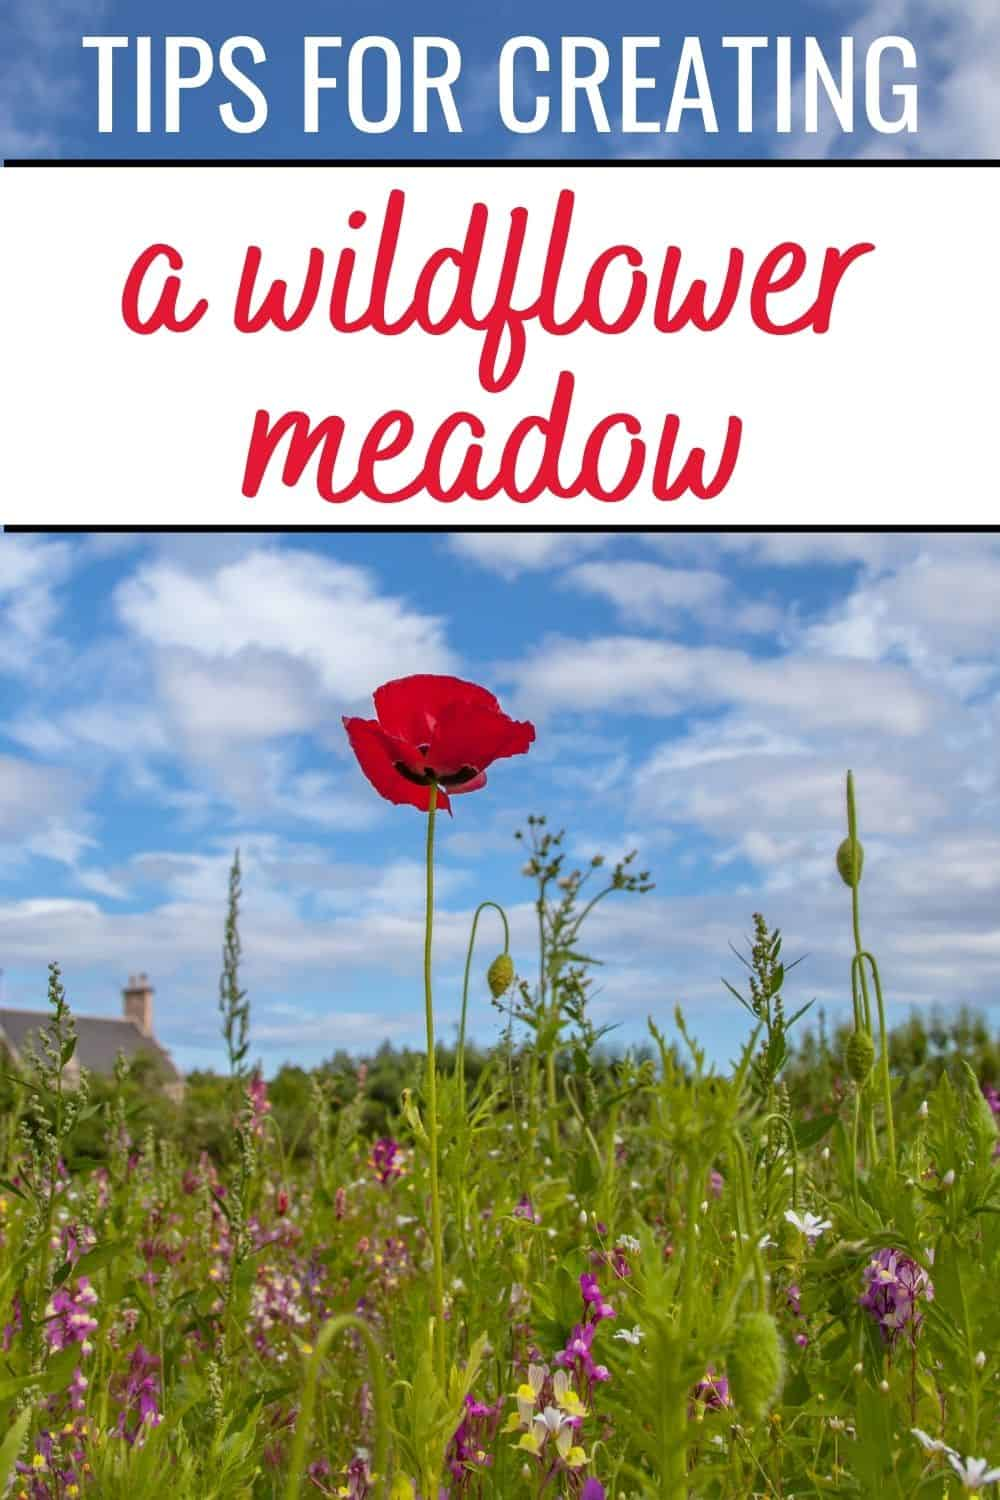 tips for creating a wildflower meadow